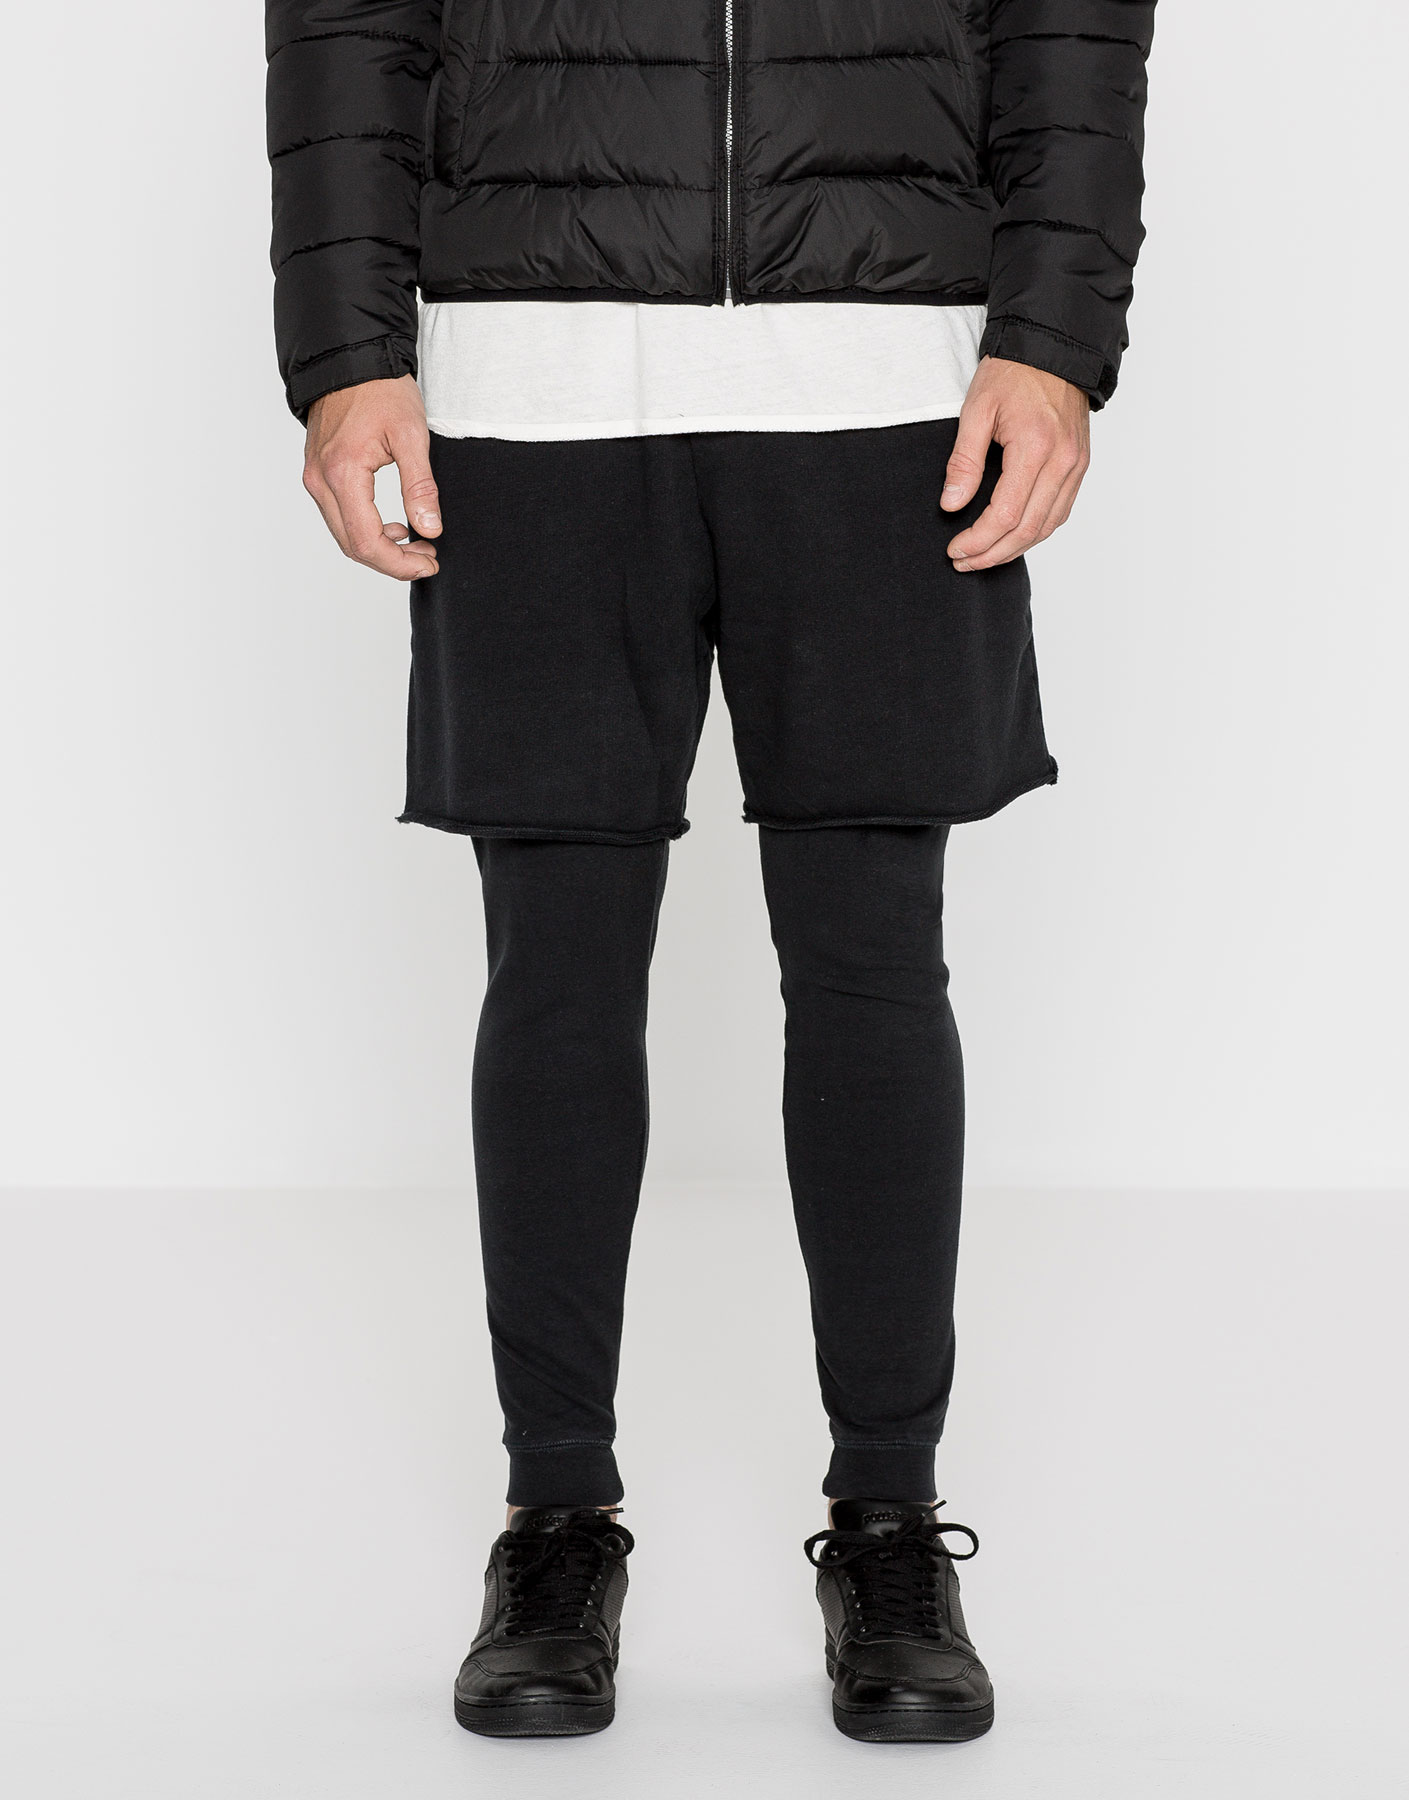 Double layer jogging trousers